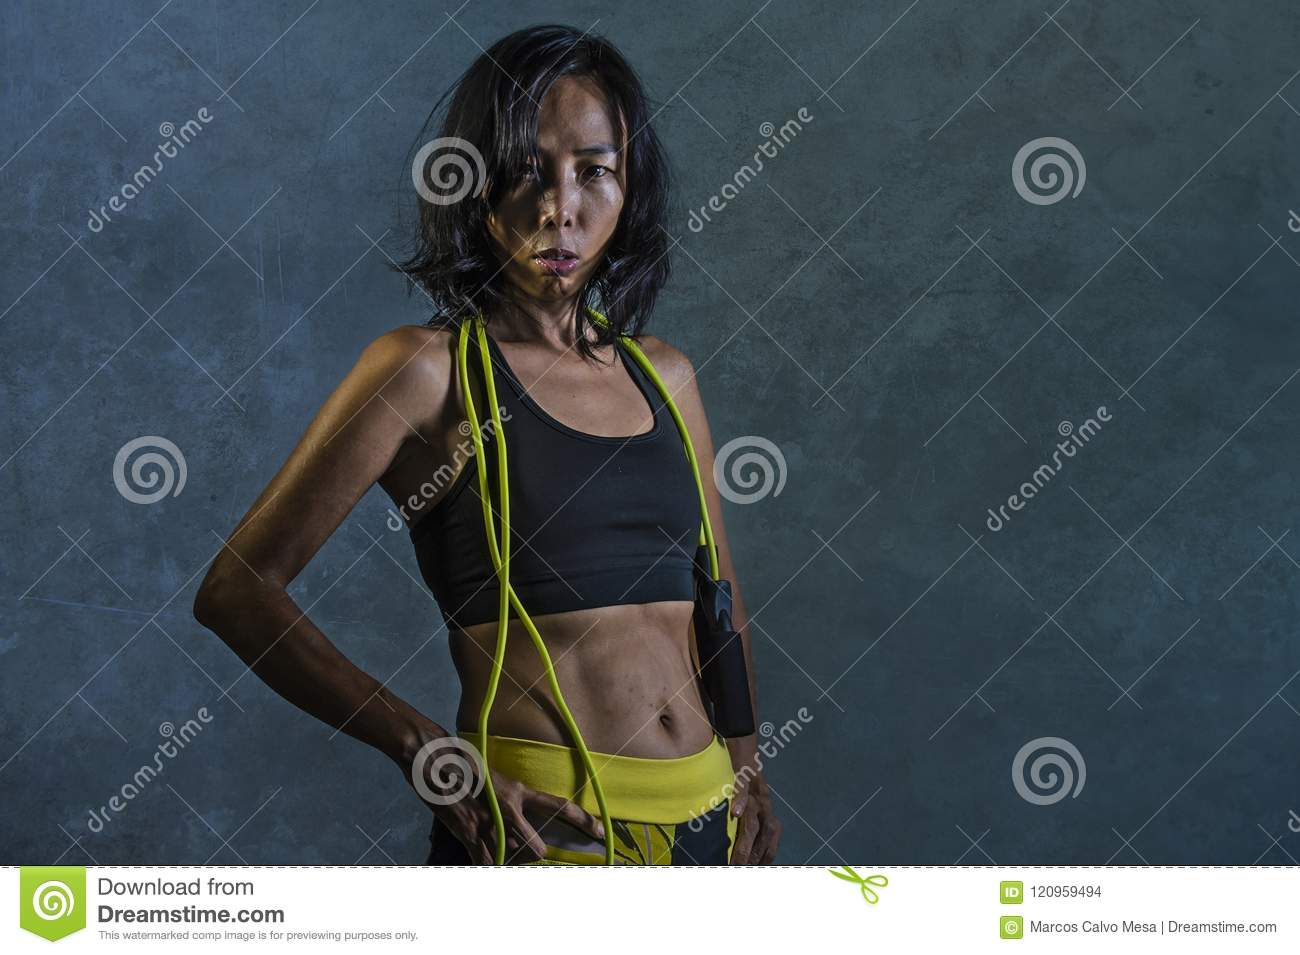 a90fa3d3c9c1b Portrait of young athletic and fit Asian Korean woman in fitness top  holding skipping rope posing cool in bad girl defiant attitude isolated on  dark ...